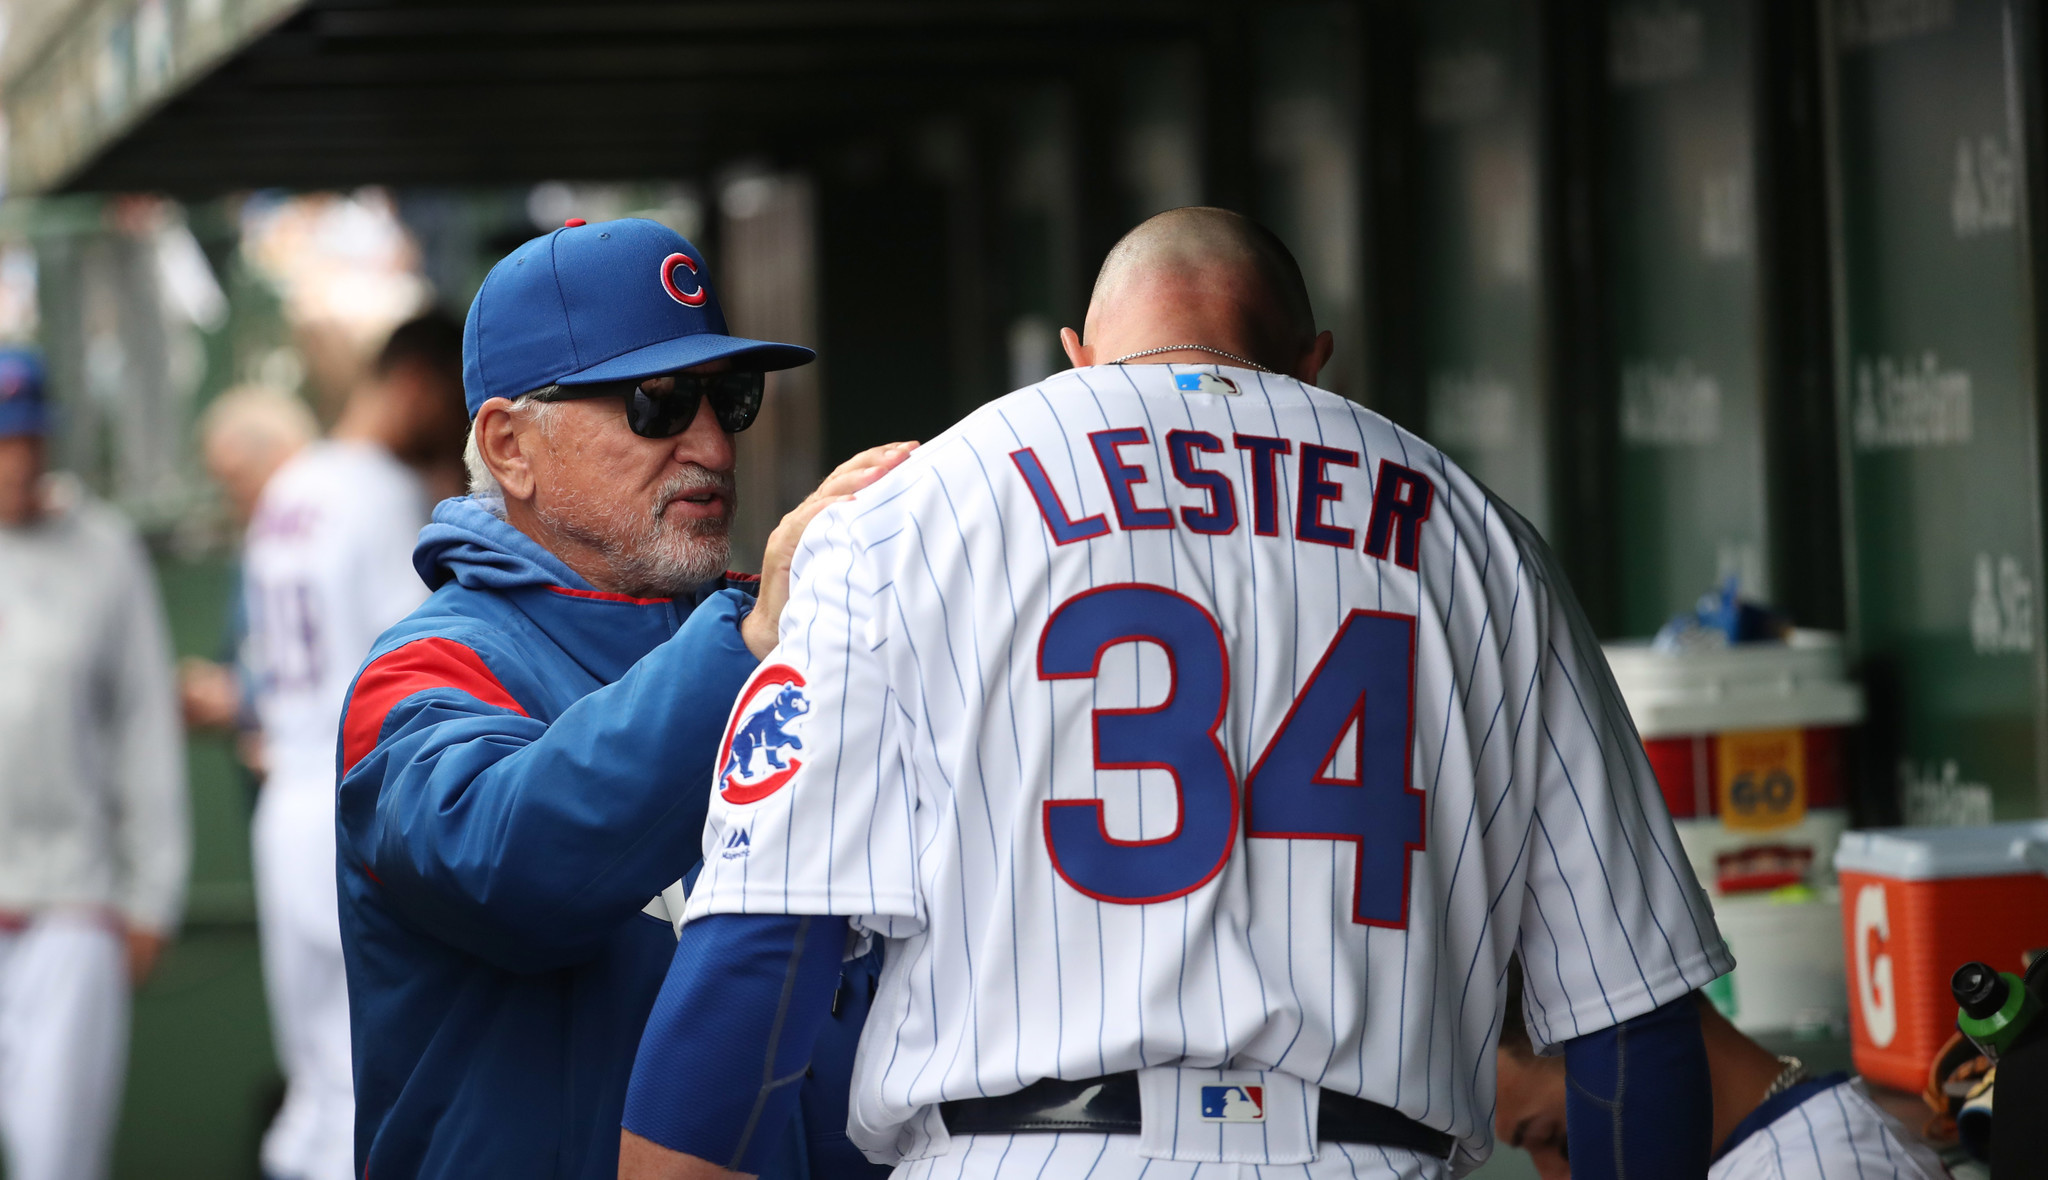 After the Cubs staff turns it around, Theo Epstein praises his pitchers' resiliency